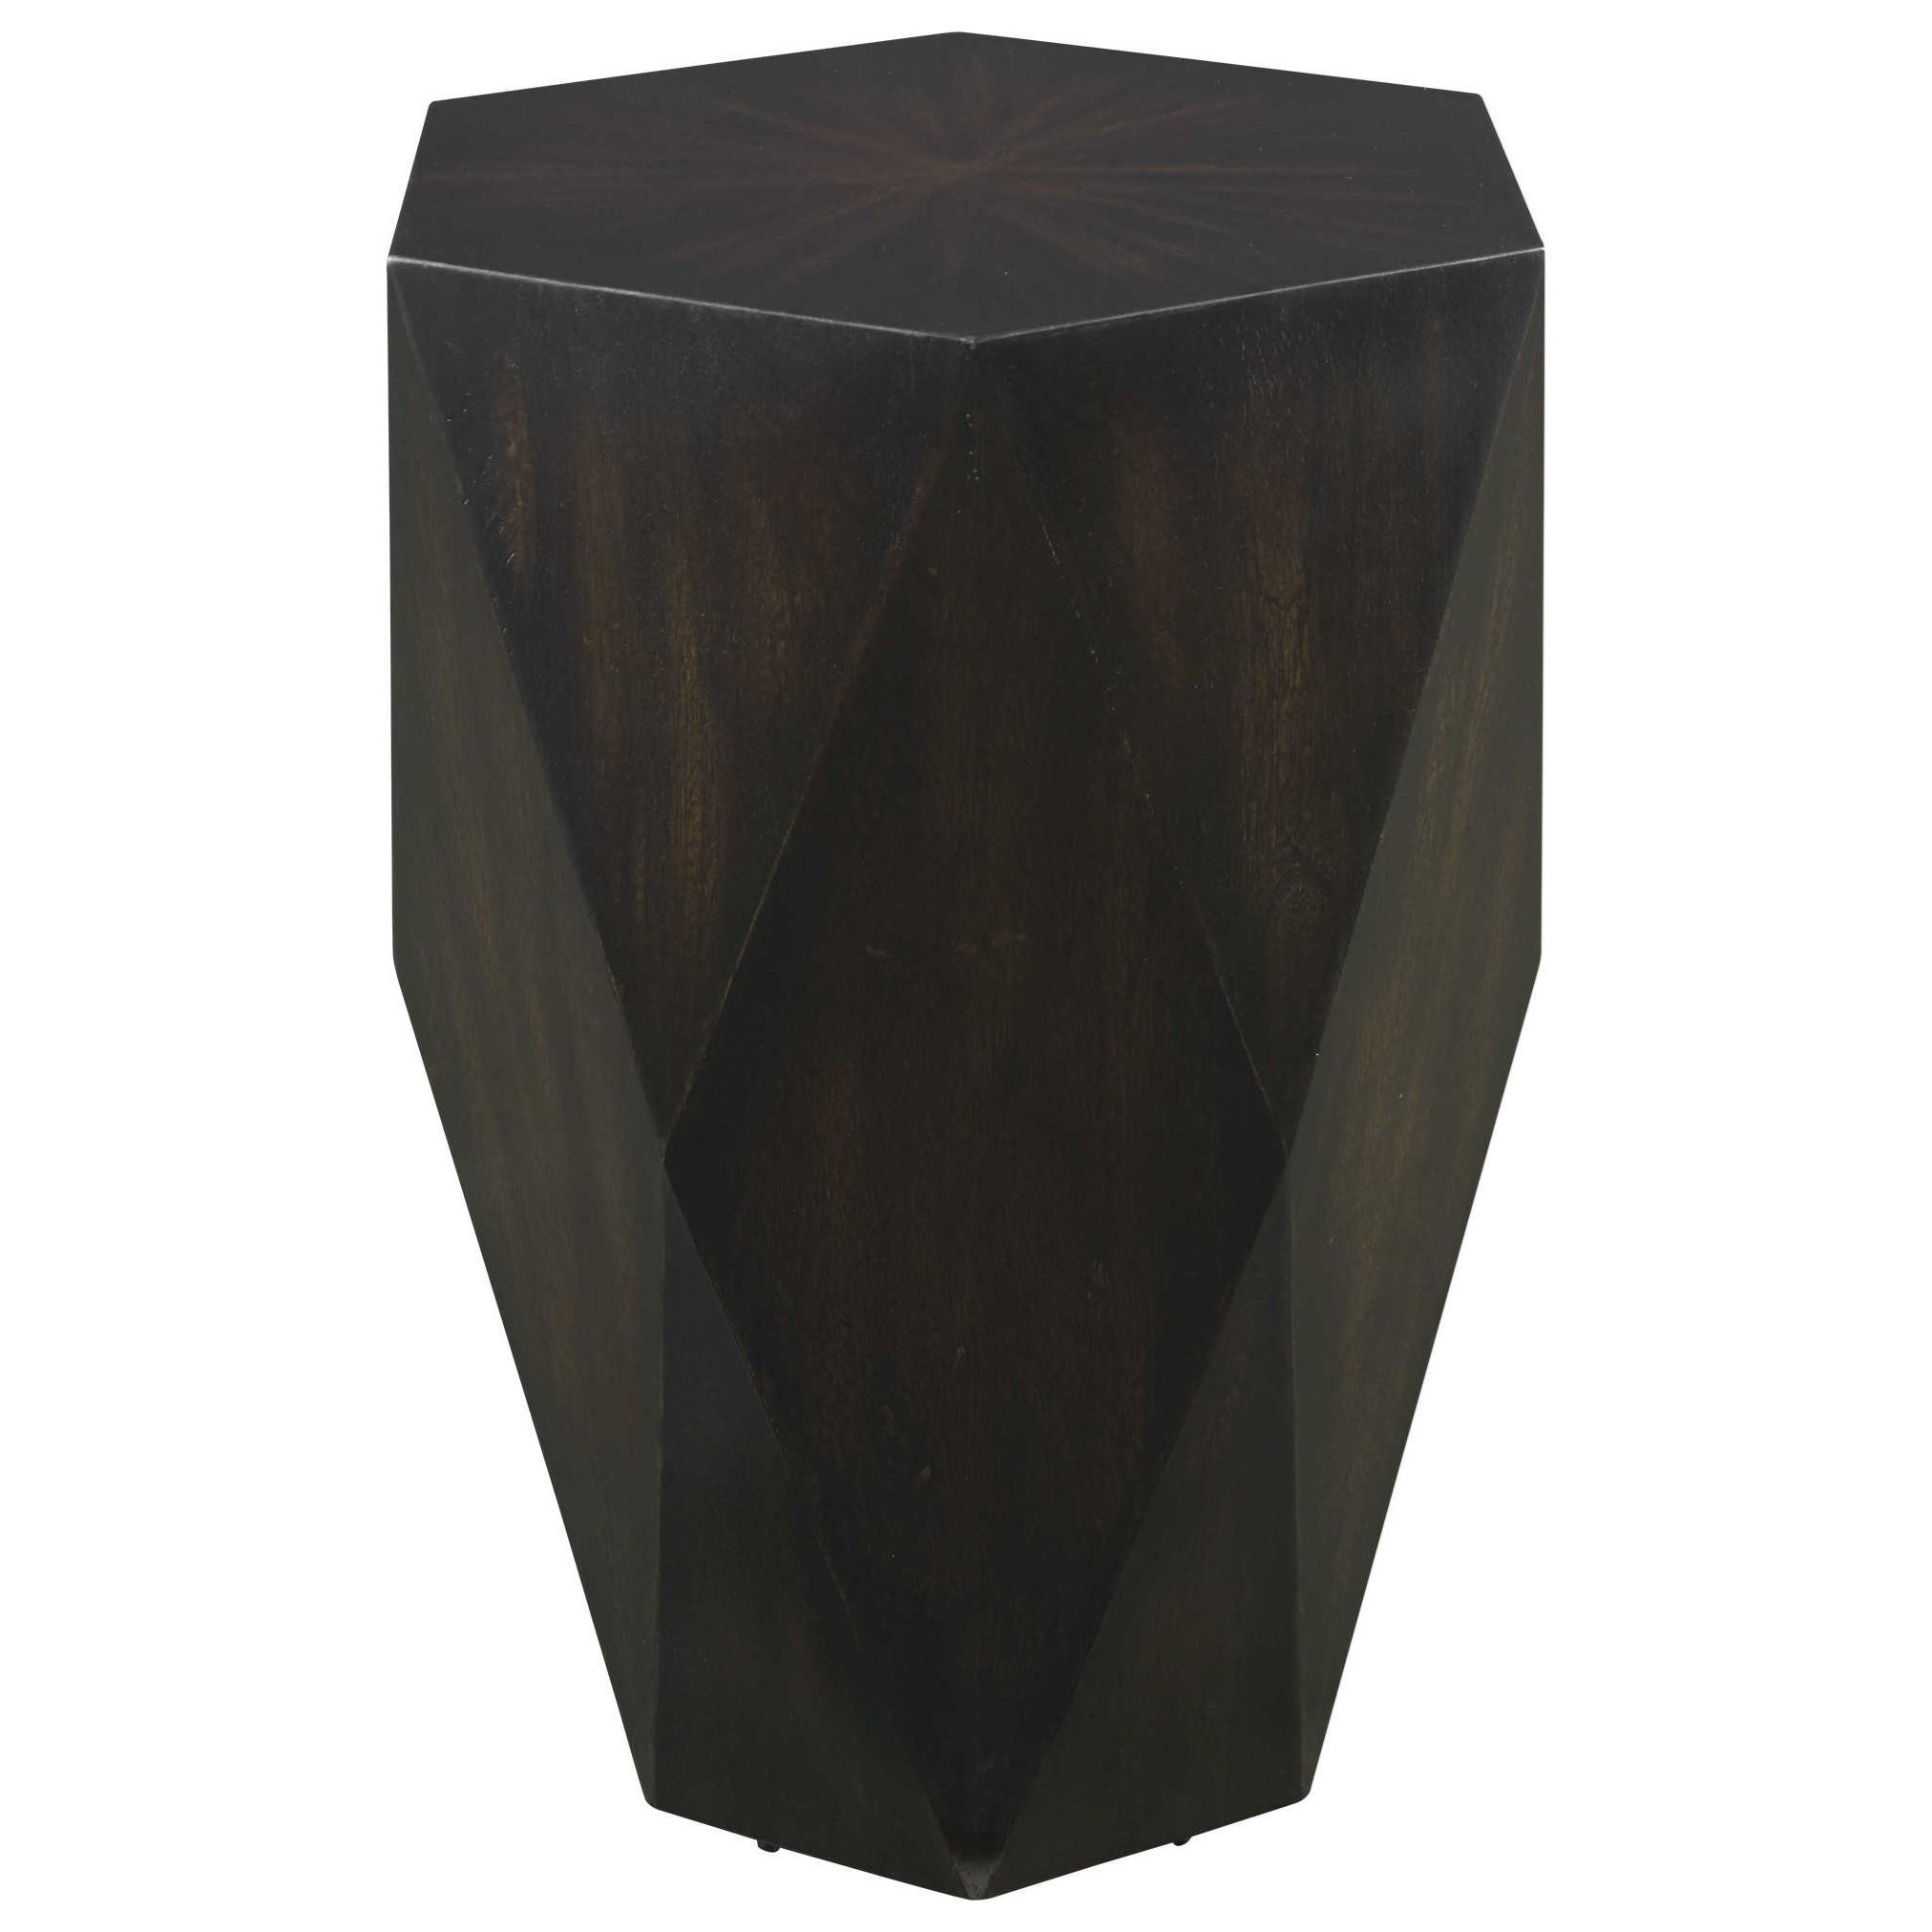 Accent Furniture - Occasional Tables Volker Black Wooden Side Table by Uttermost at Upper Room Home Furnishings